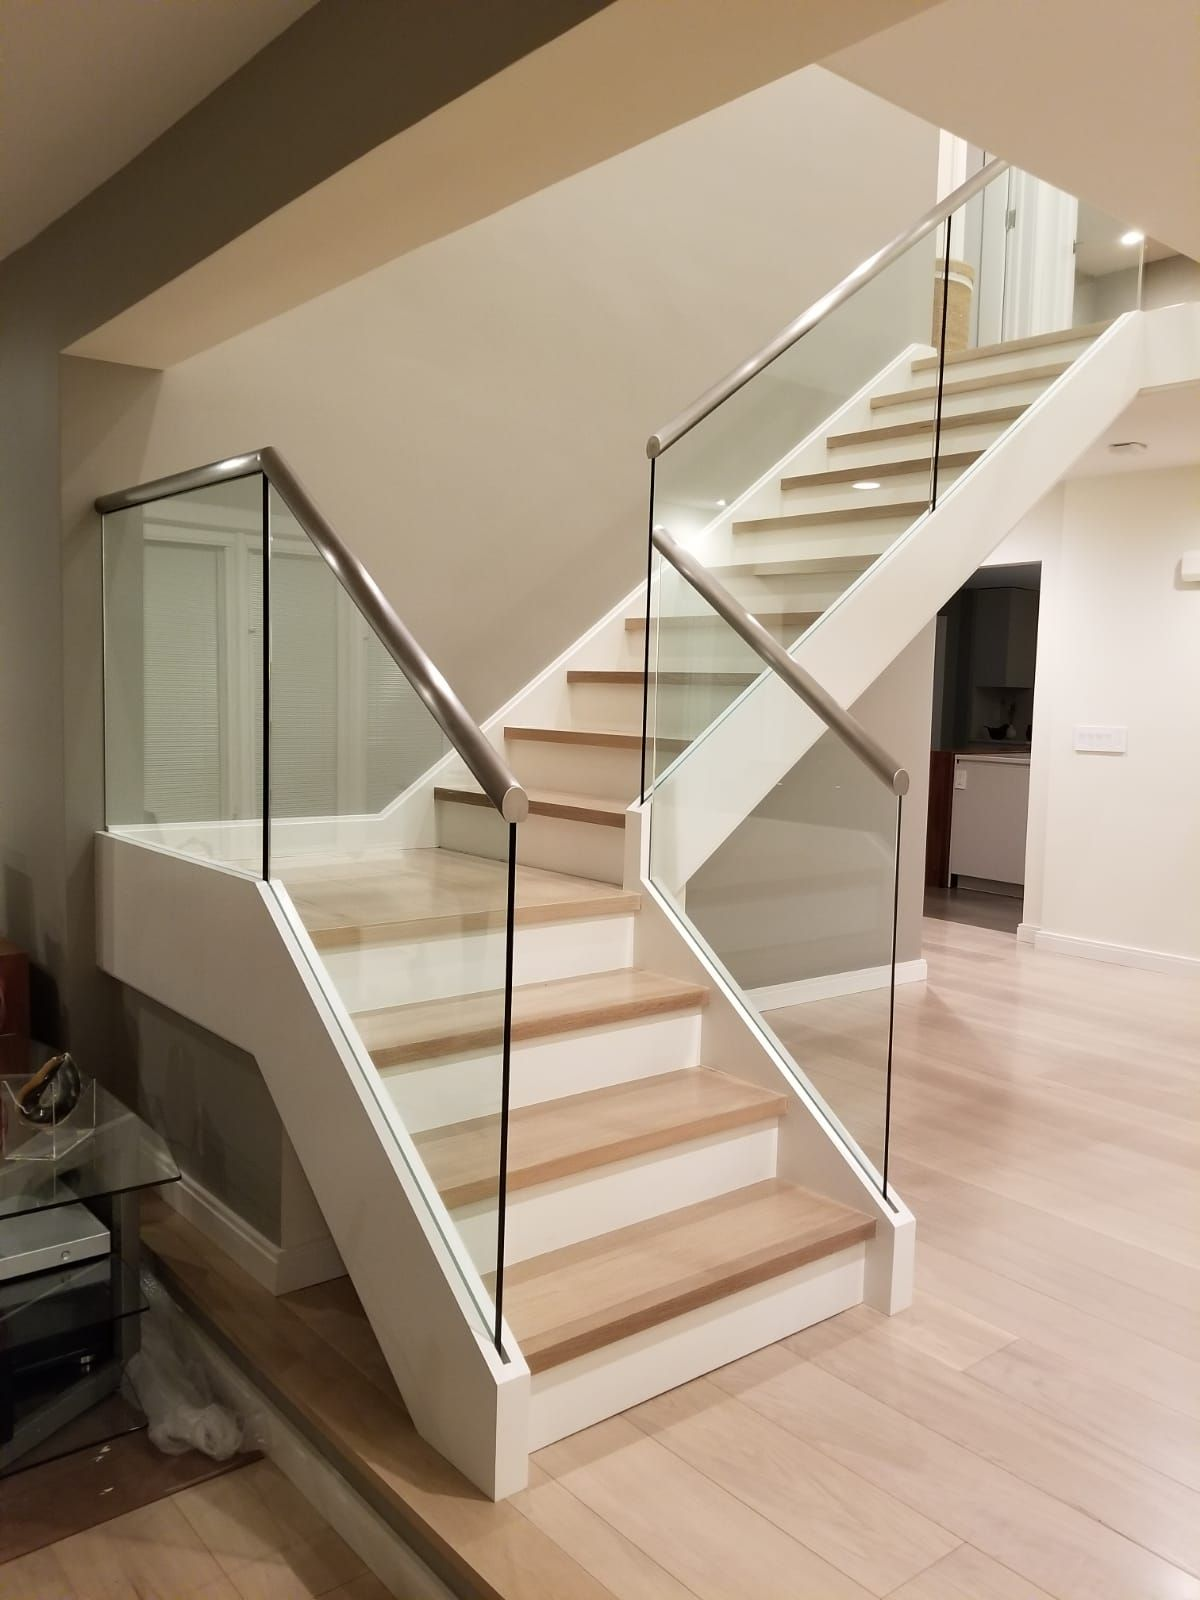 Slim Base Glass Railing Is An Innovative Way Of Attaching The Glass Panels To The Staircase The Glass Is Secure Decorando Escadaria Ideias Para Escadaria Home